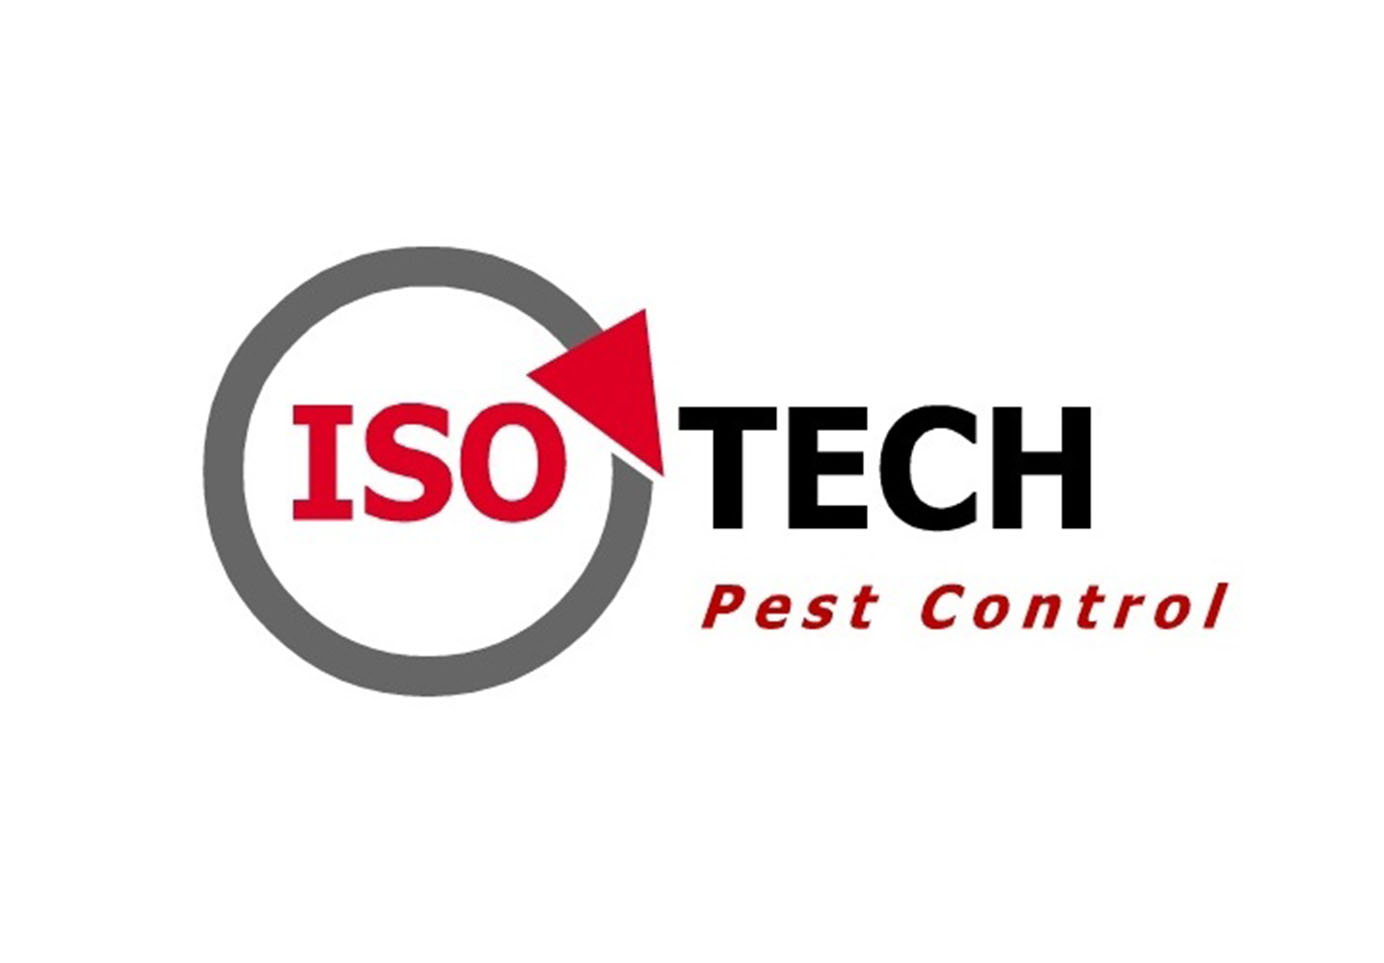 Isotech Pestcontrol